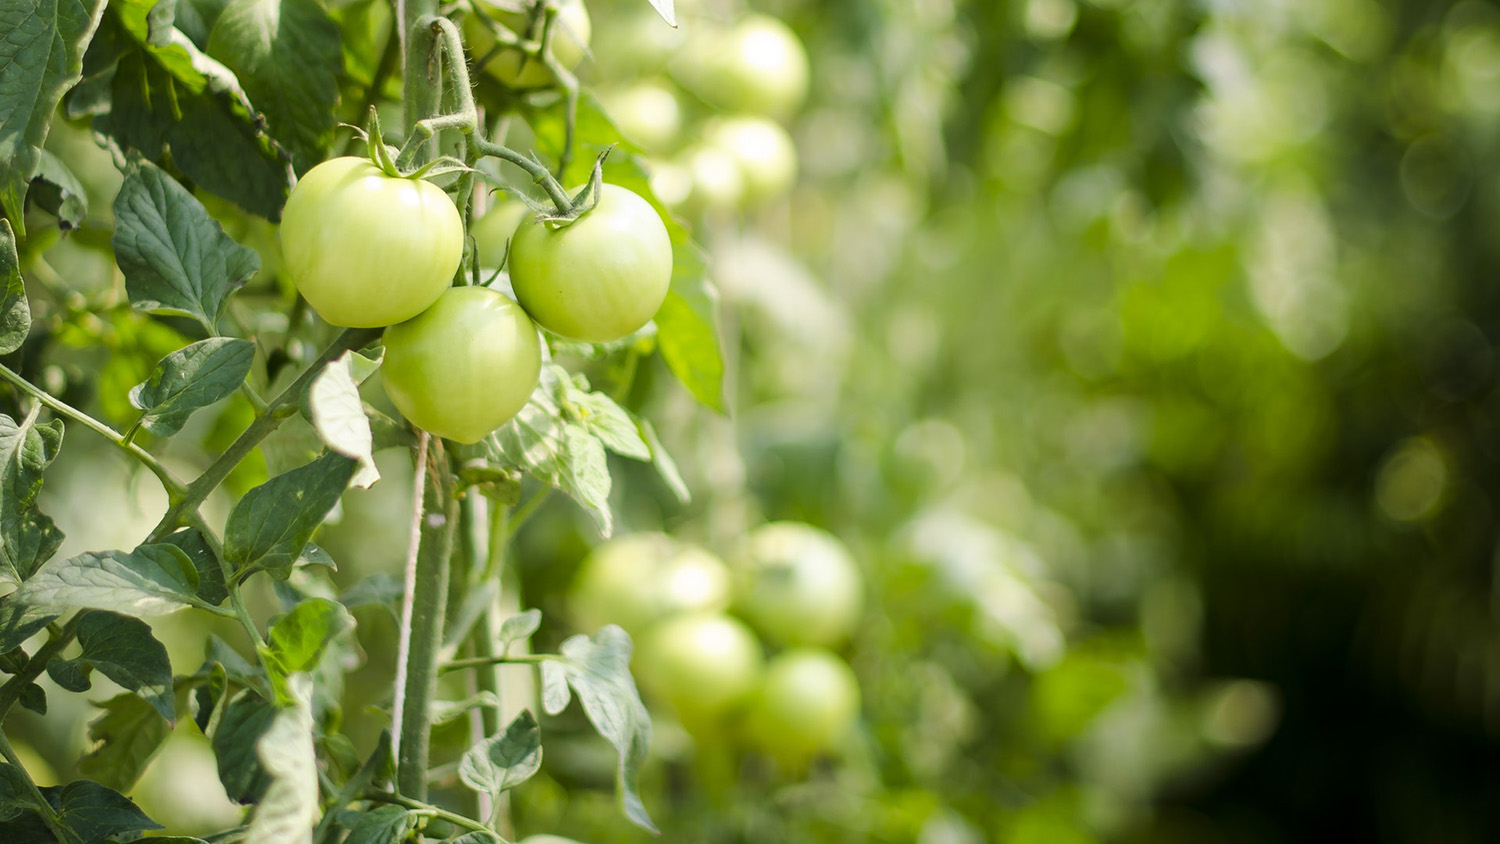 field of green tomatoes